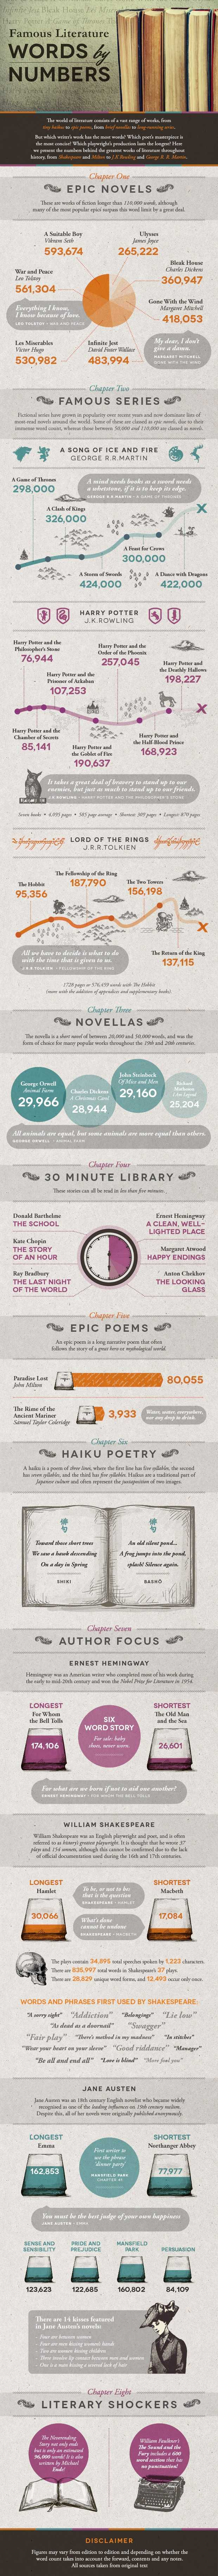 Word Counts Of Famous Books